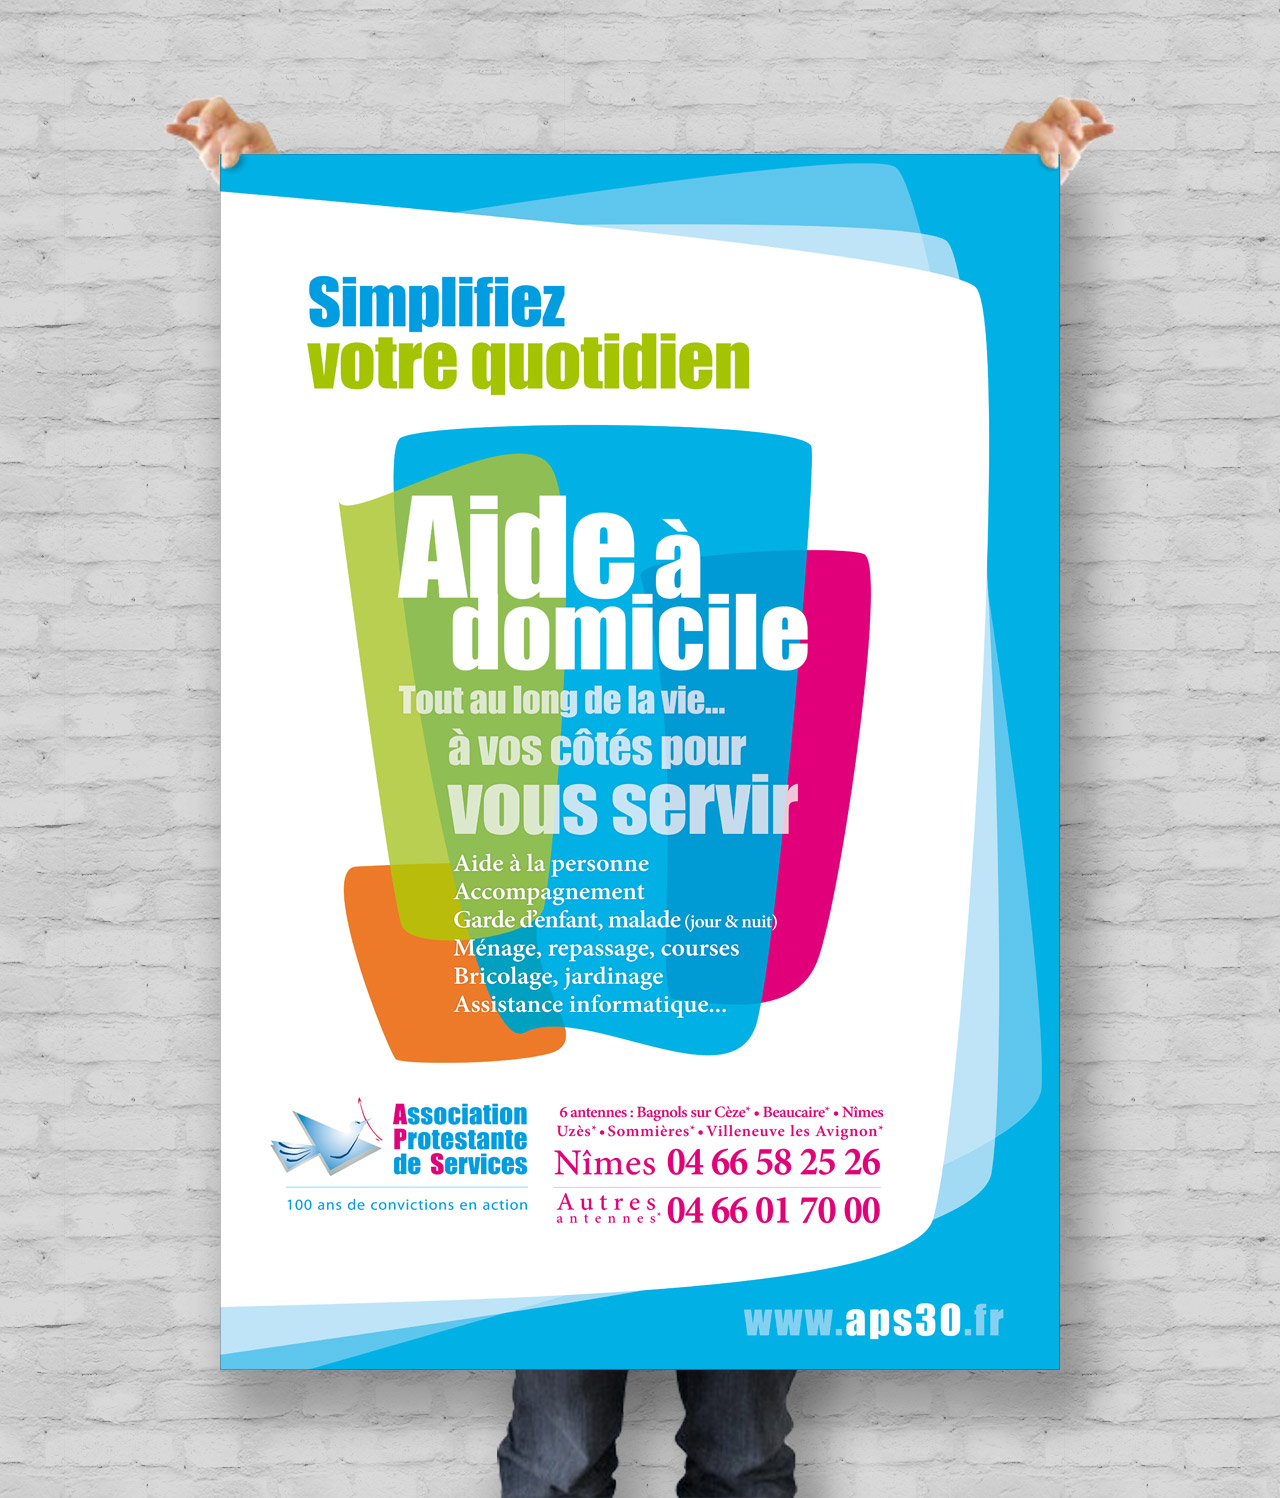 aps-30-affiche-creation-communication-caconcept-alexis-cretin-graphiste